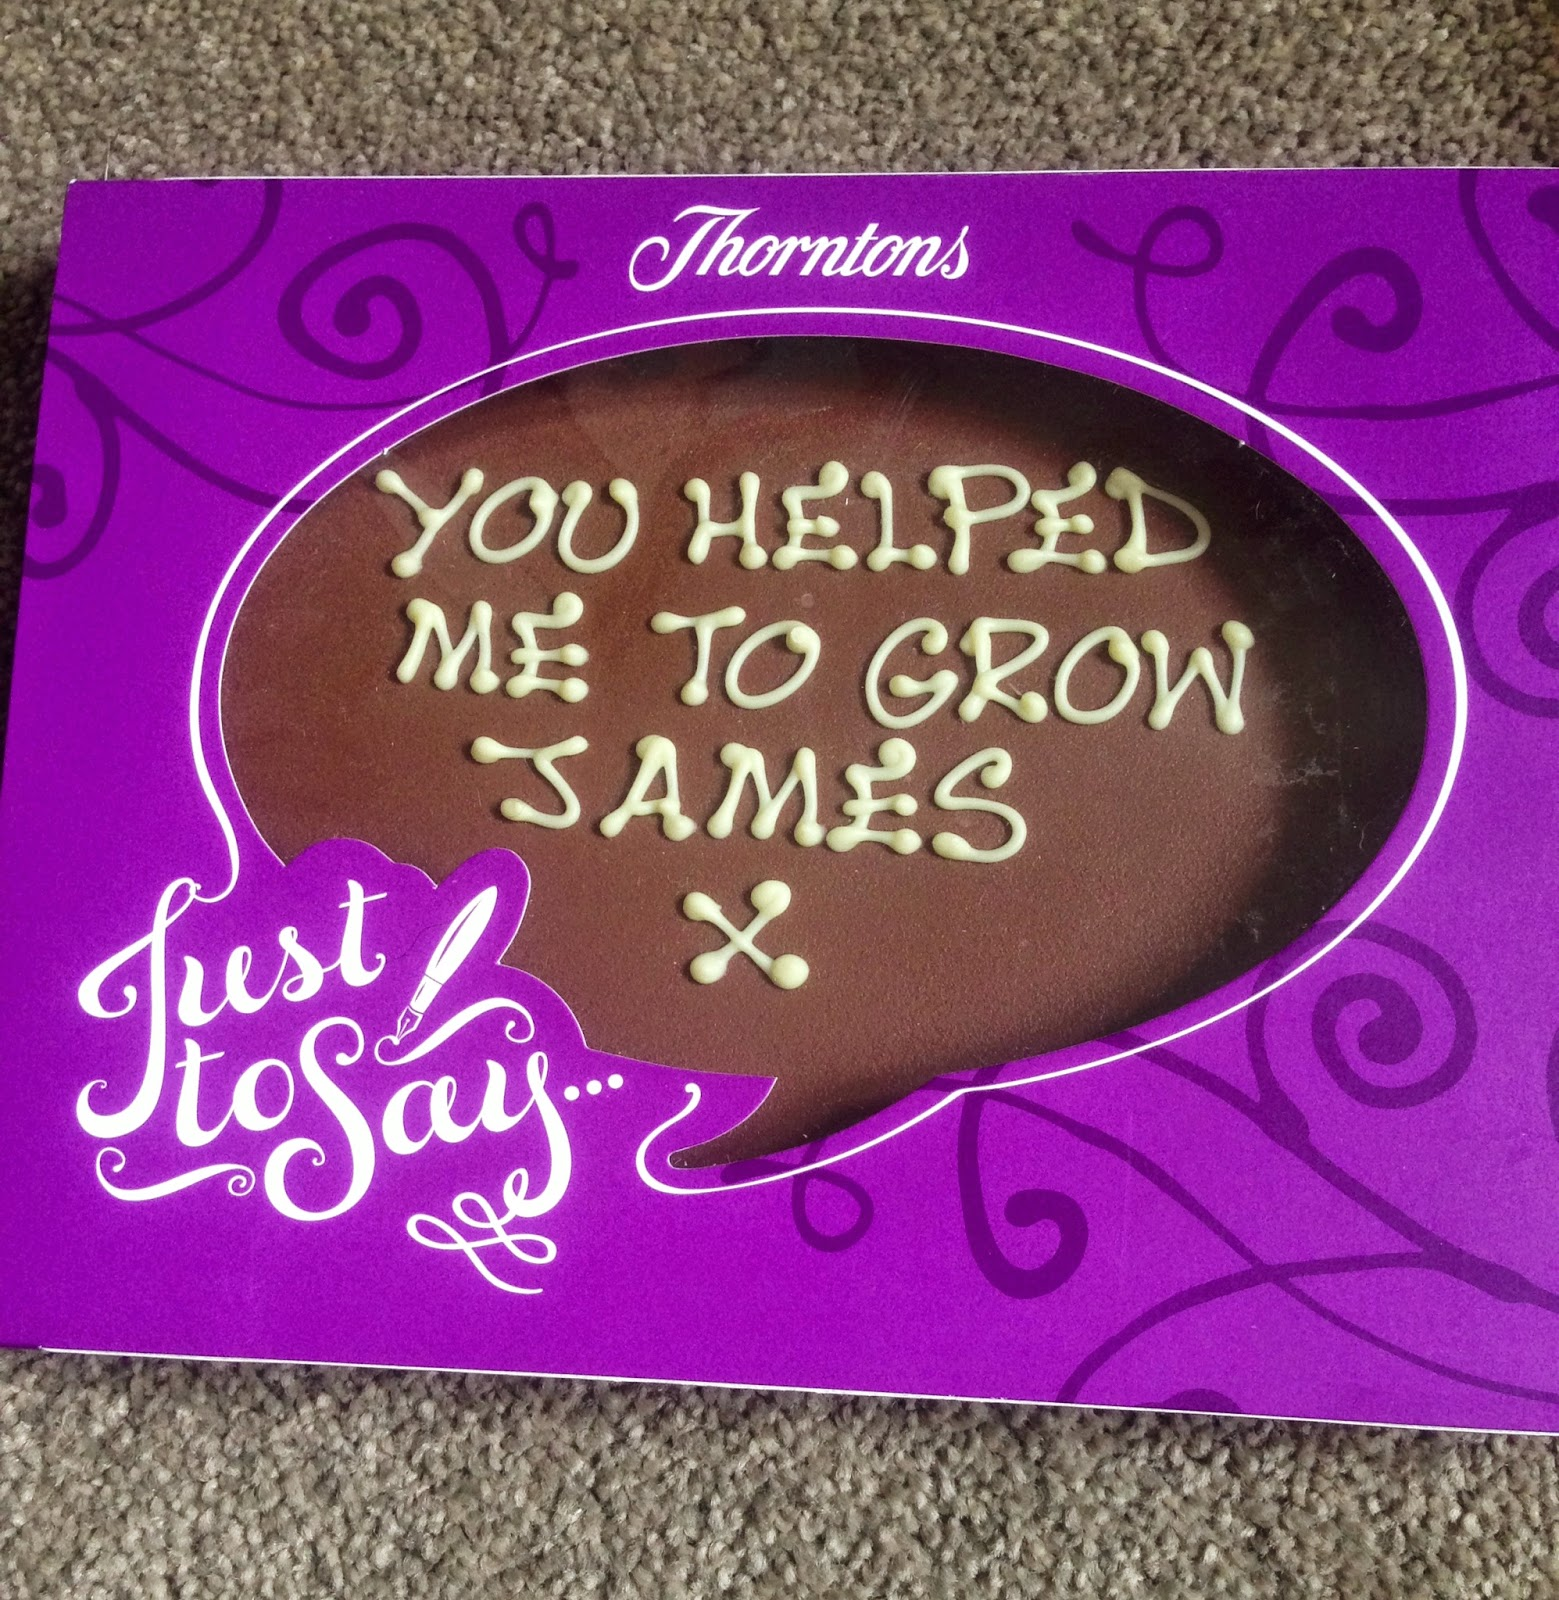 thorntons+chocolates+personalised+gift+ideas+review+blog.JPG